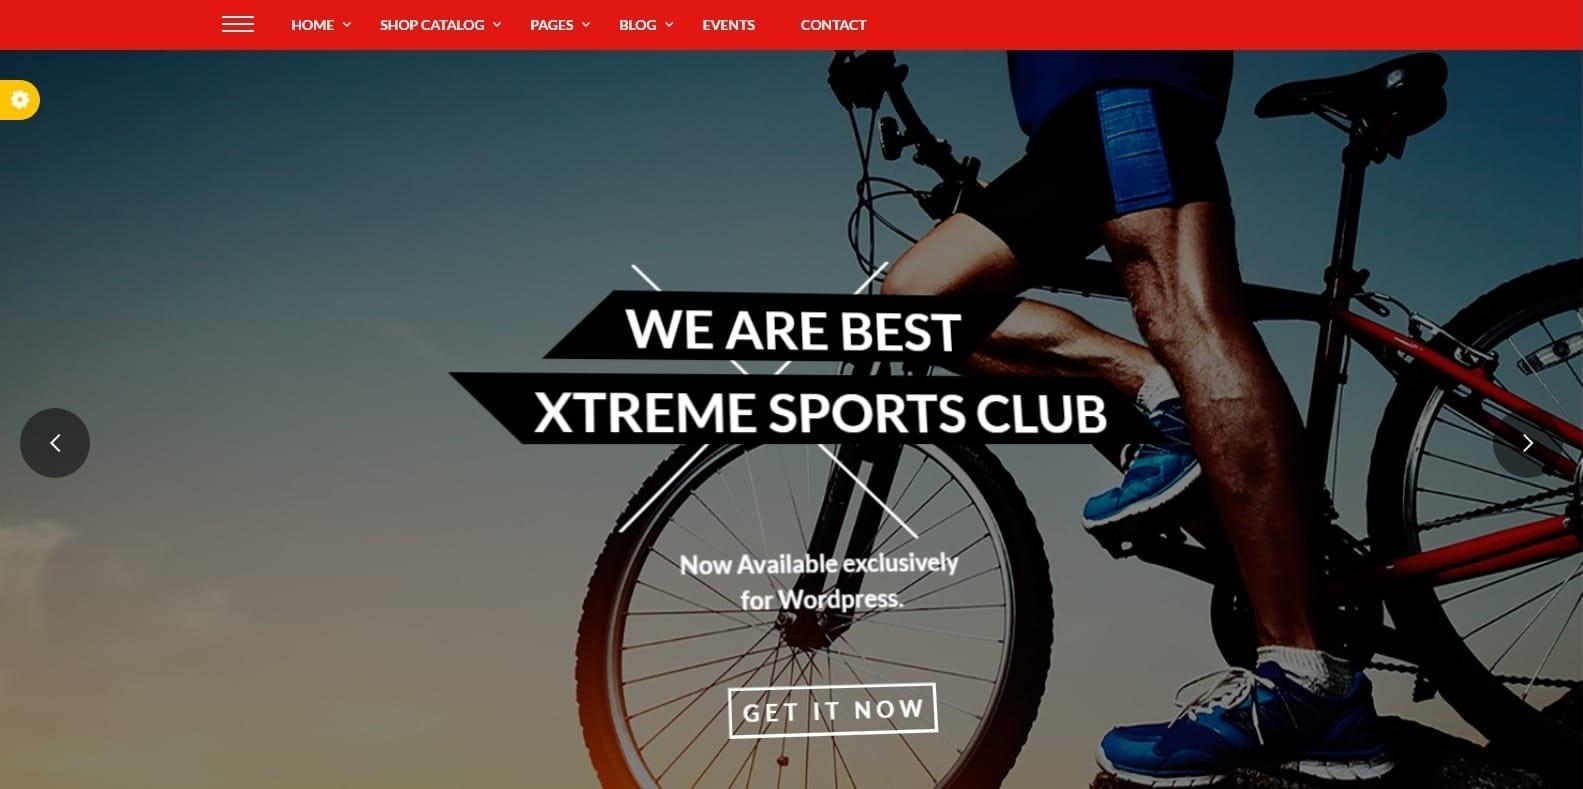 xtreme-sports-website-template